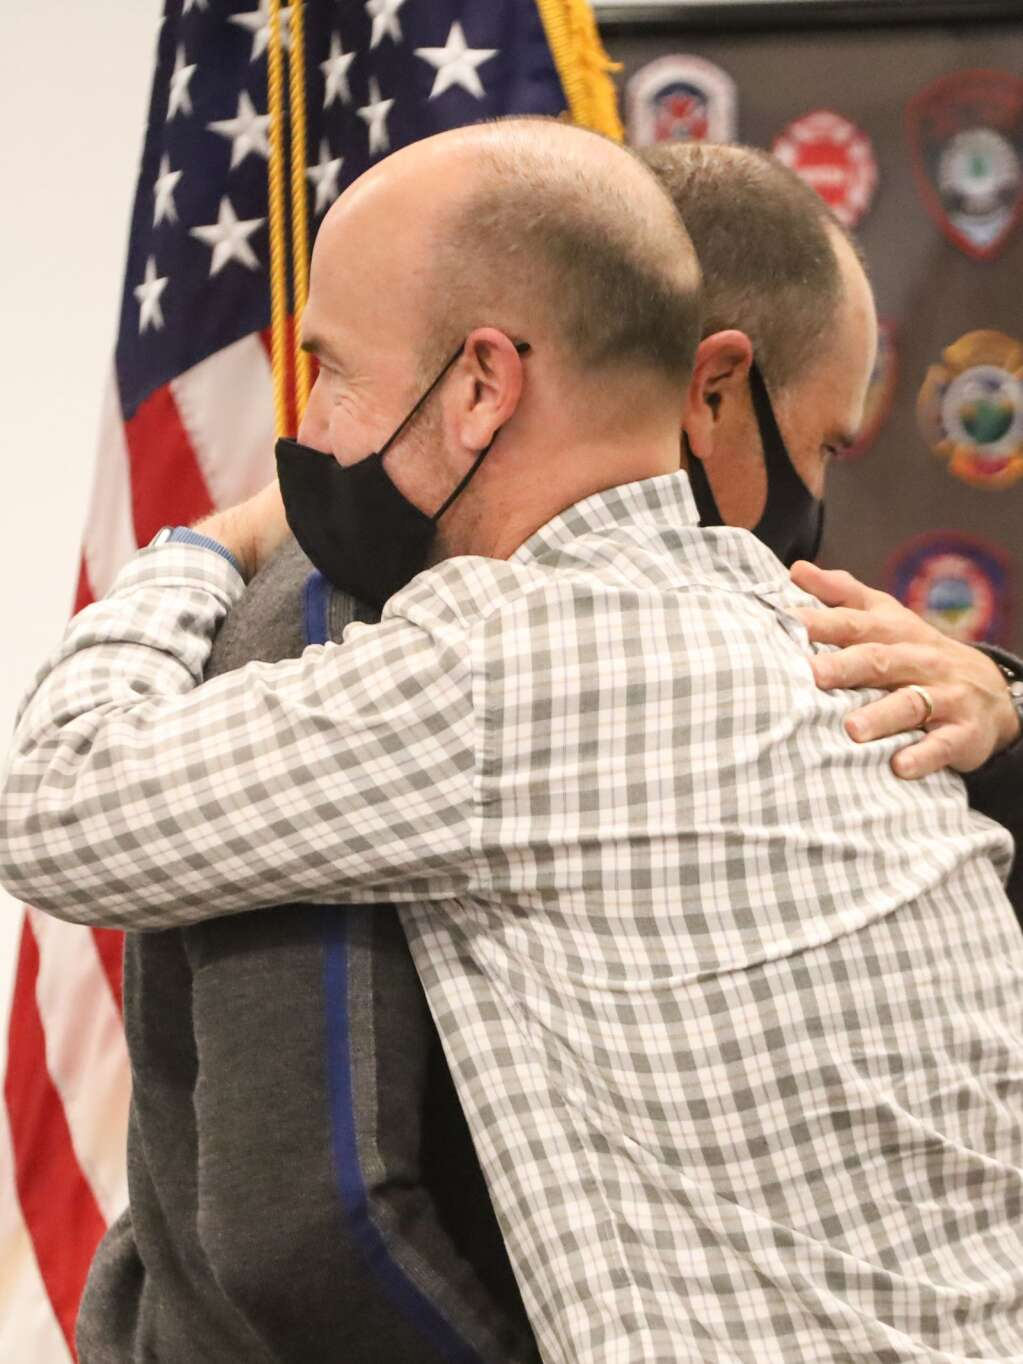 Basalt resident Michael Latousek gives a hug during a ceremony organized by Roaring Fork Fire Rescue on Friday, Feb. 12, 2021, in El Jebel. Photo by Austin Colbert/The Aspen Times.